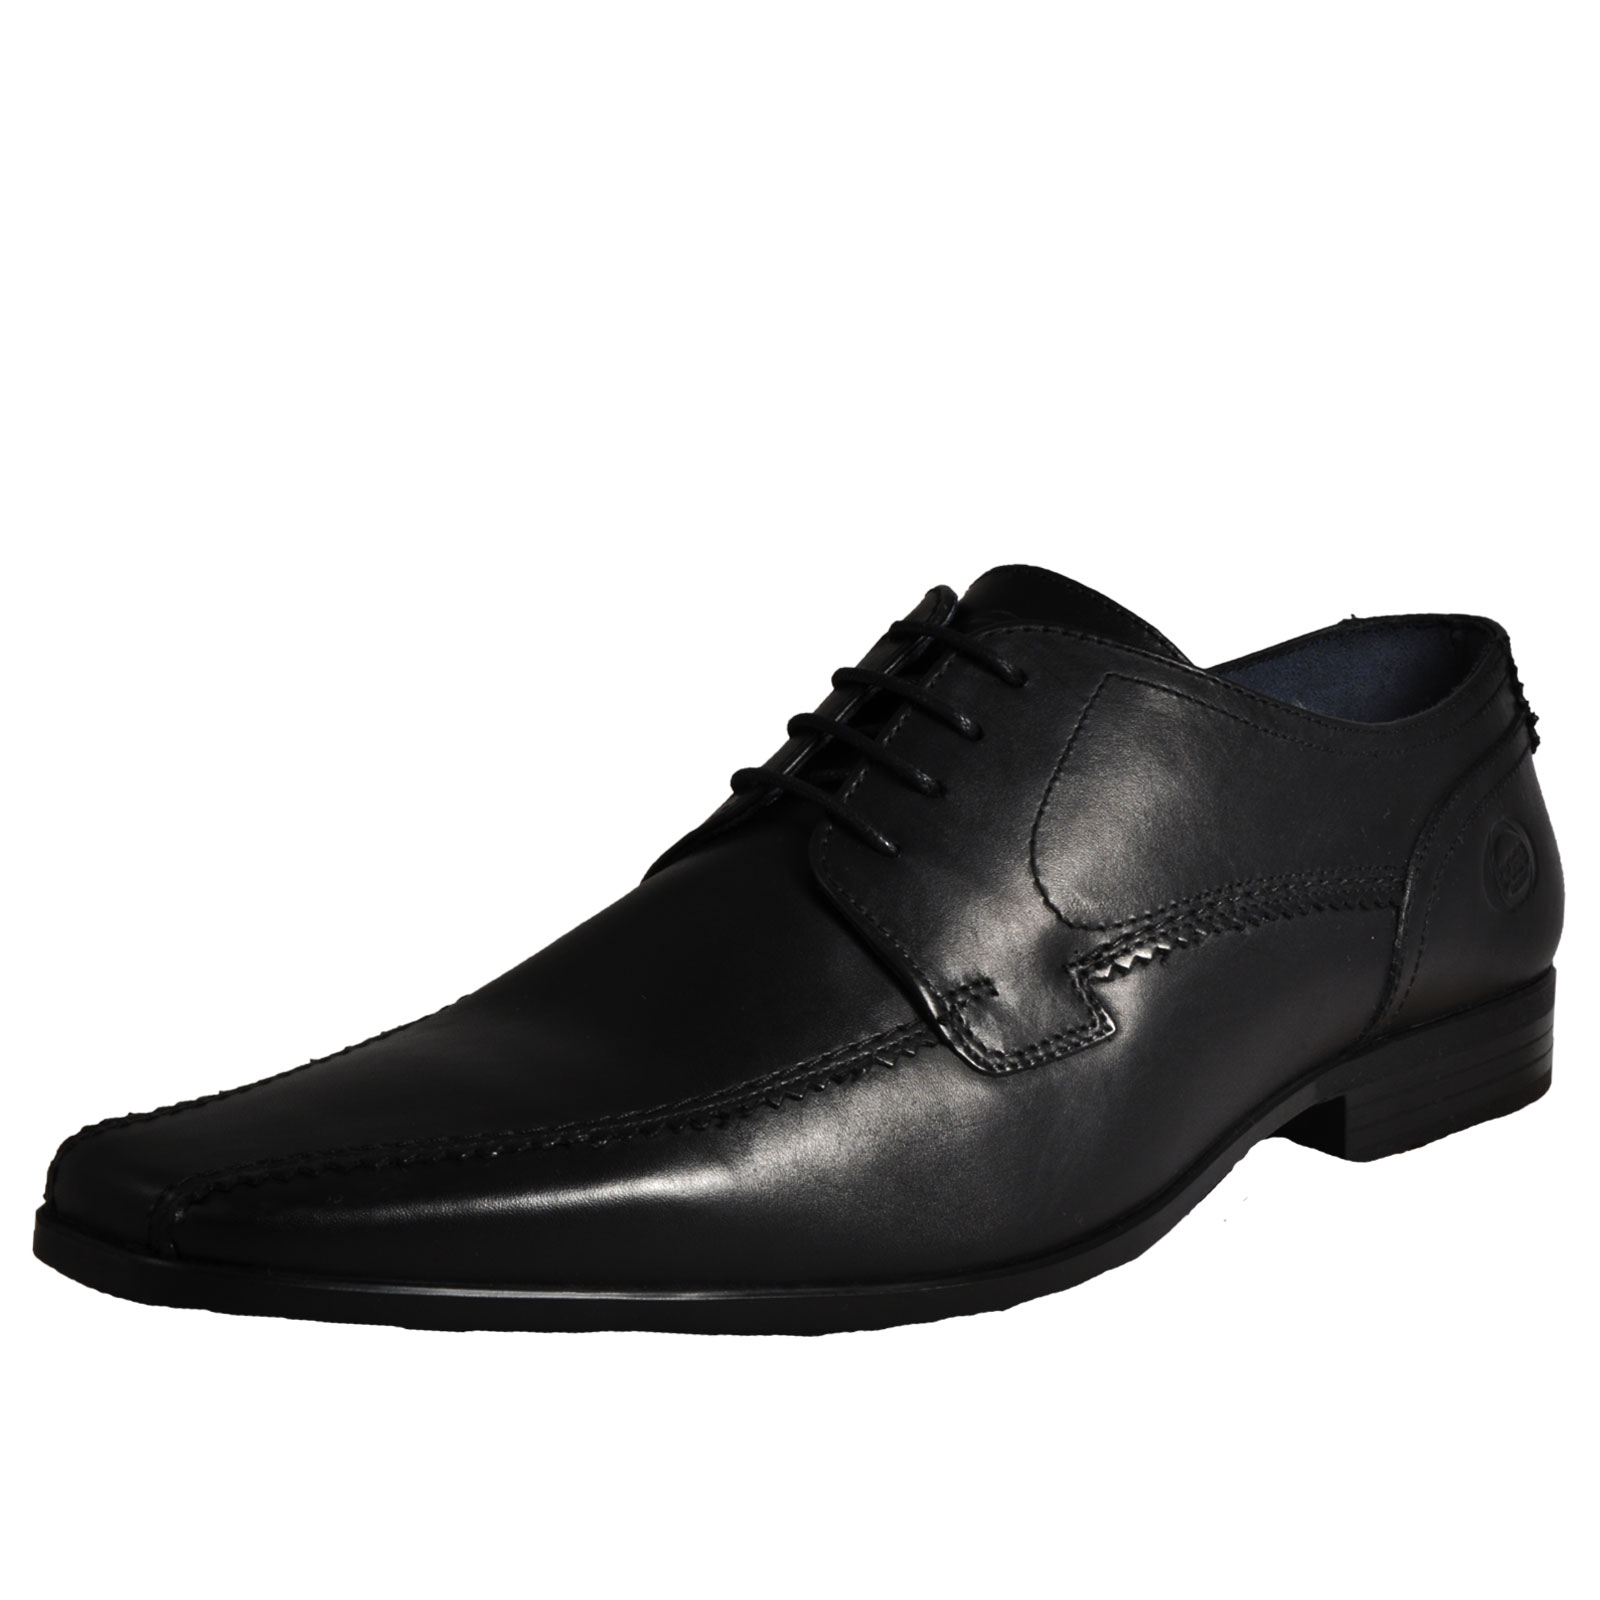 Base London Try Hombre Zapatos Negro nzN1iT